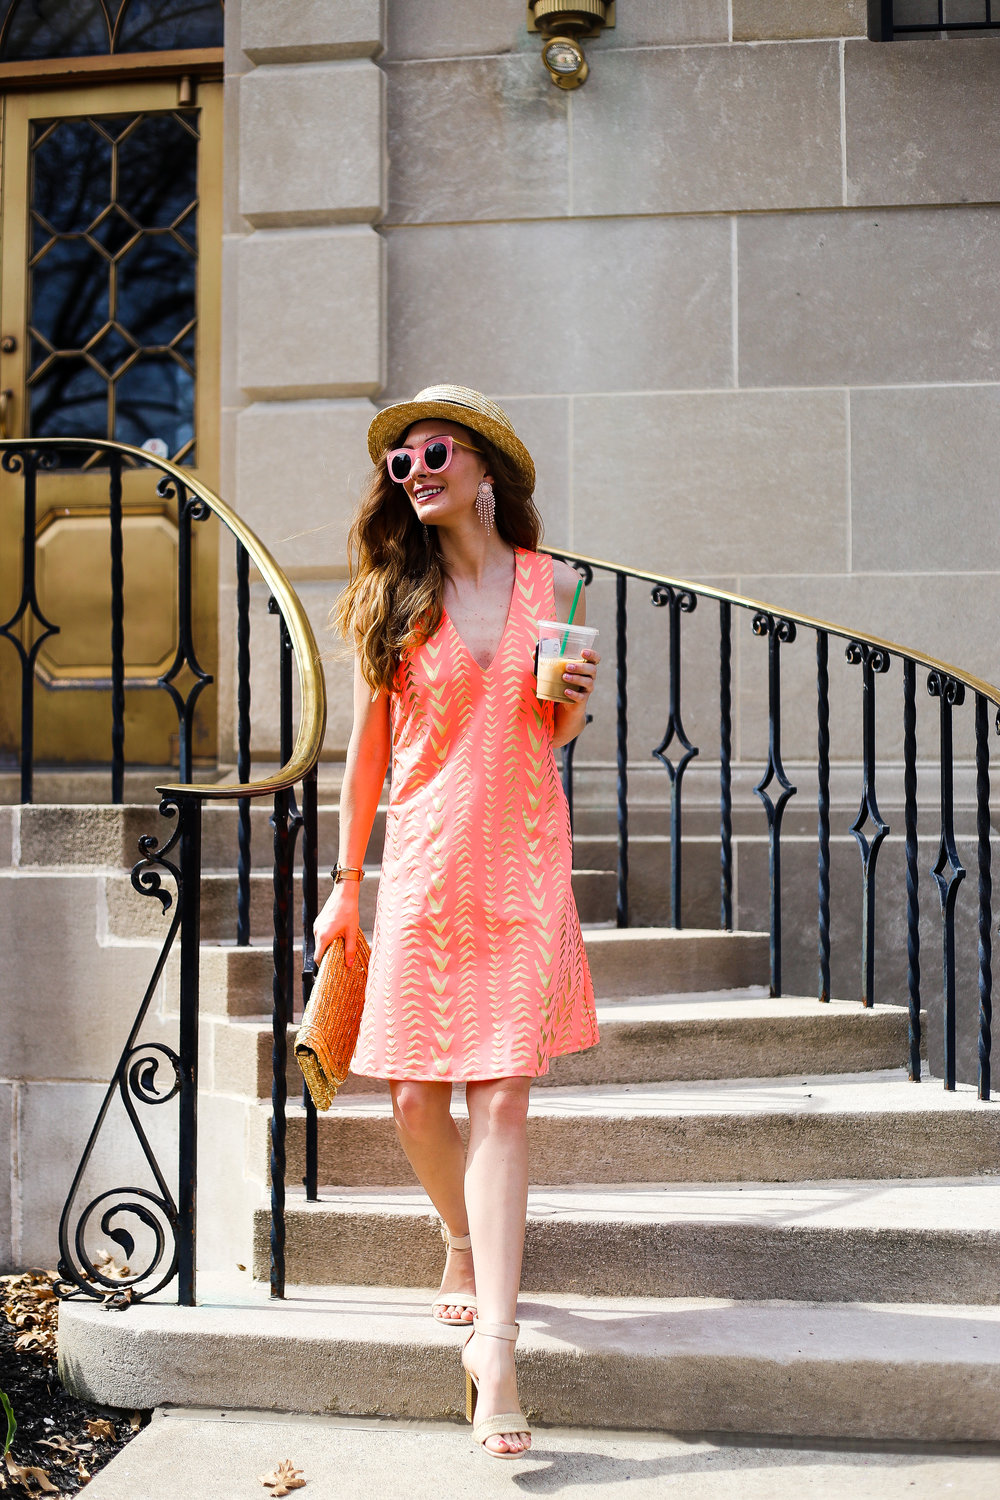 Sunny Days Ahead // Neon Metallic Dress- Enchanting Elegance